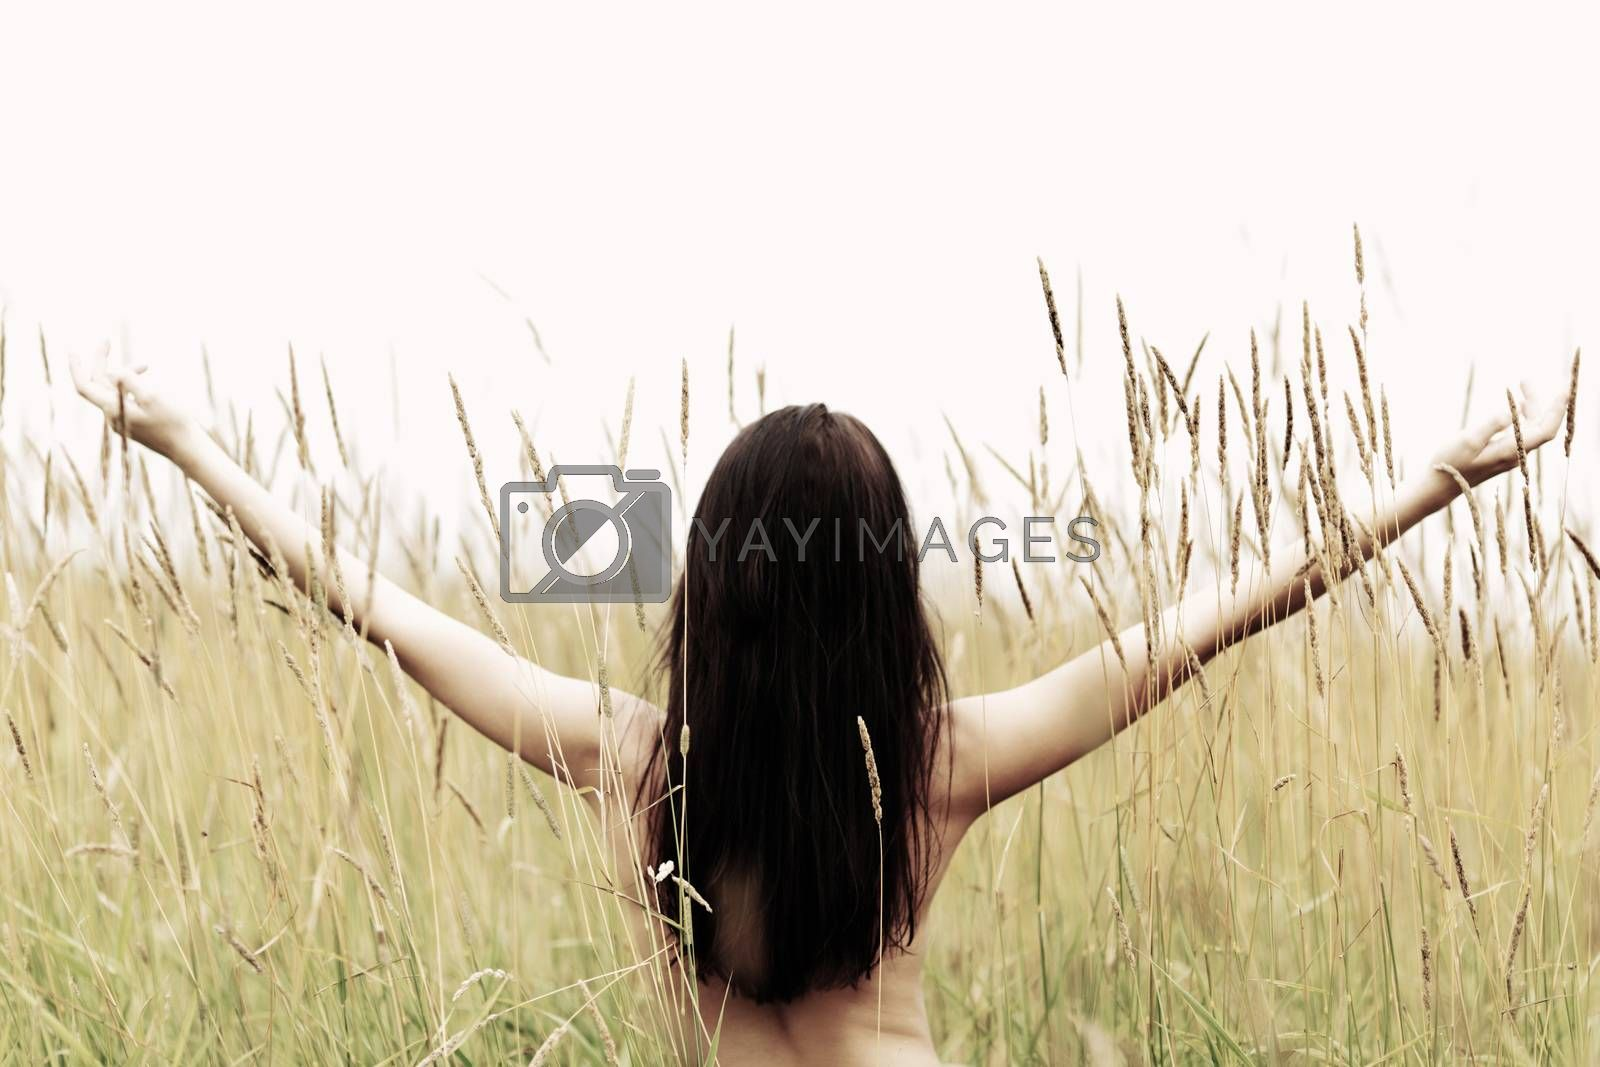 woman on grass field feel freedom standing with arms raised